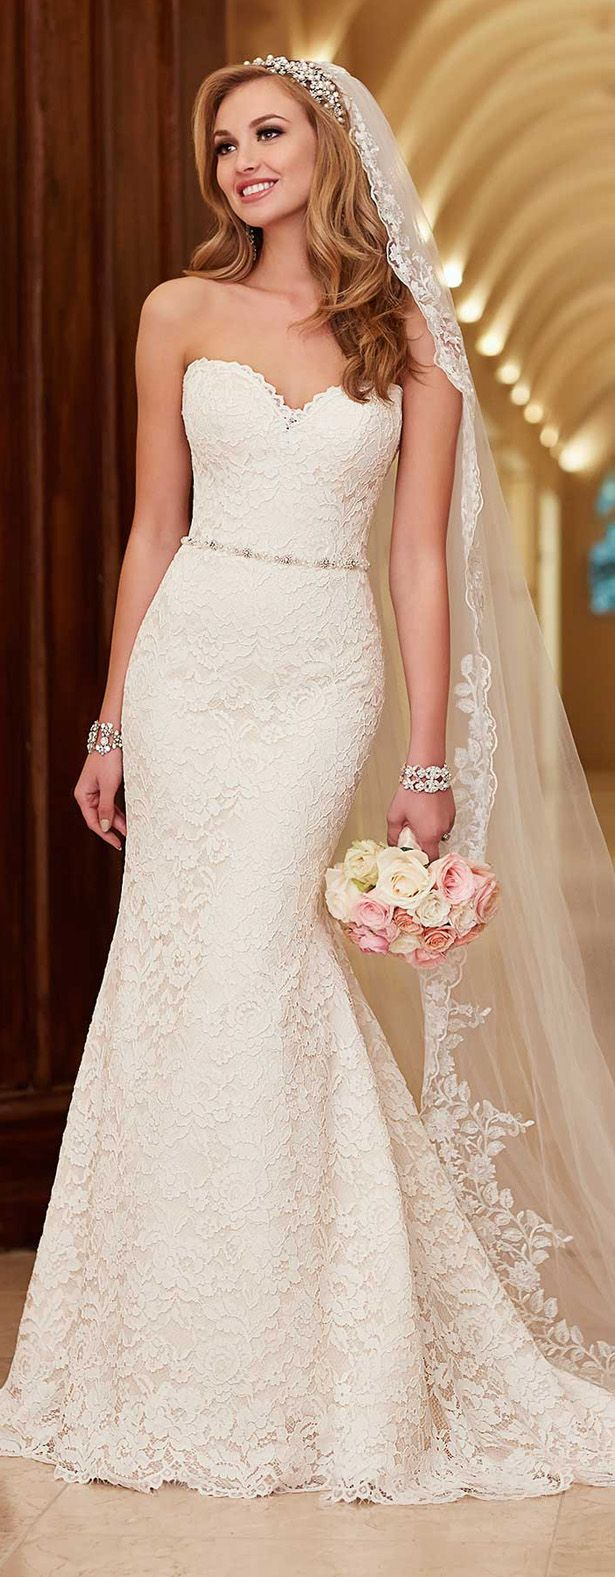 Wedding Dress by Stella York Spring 2016 www.bellabridalandheirlooms.com have stunning veils that are affordable